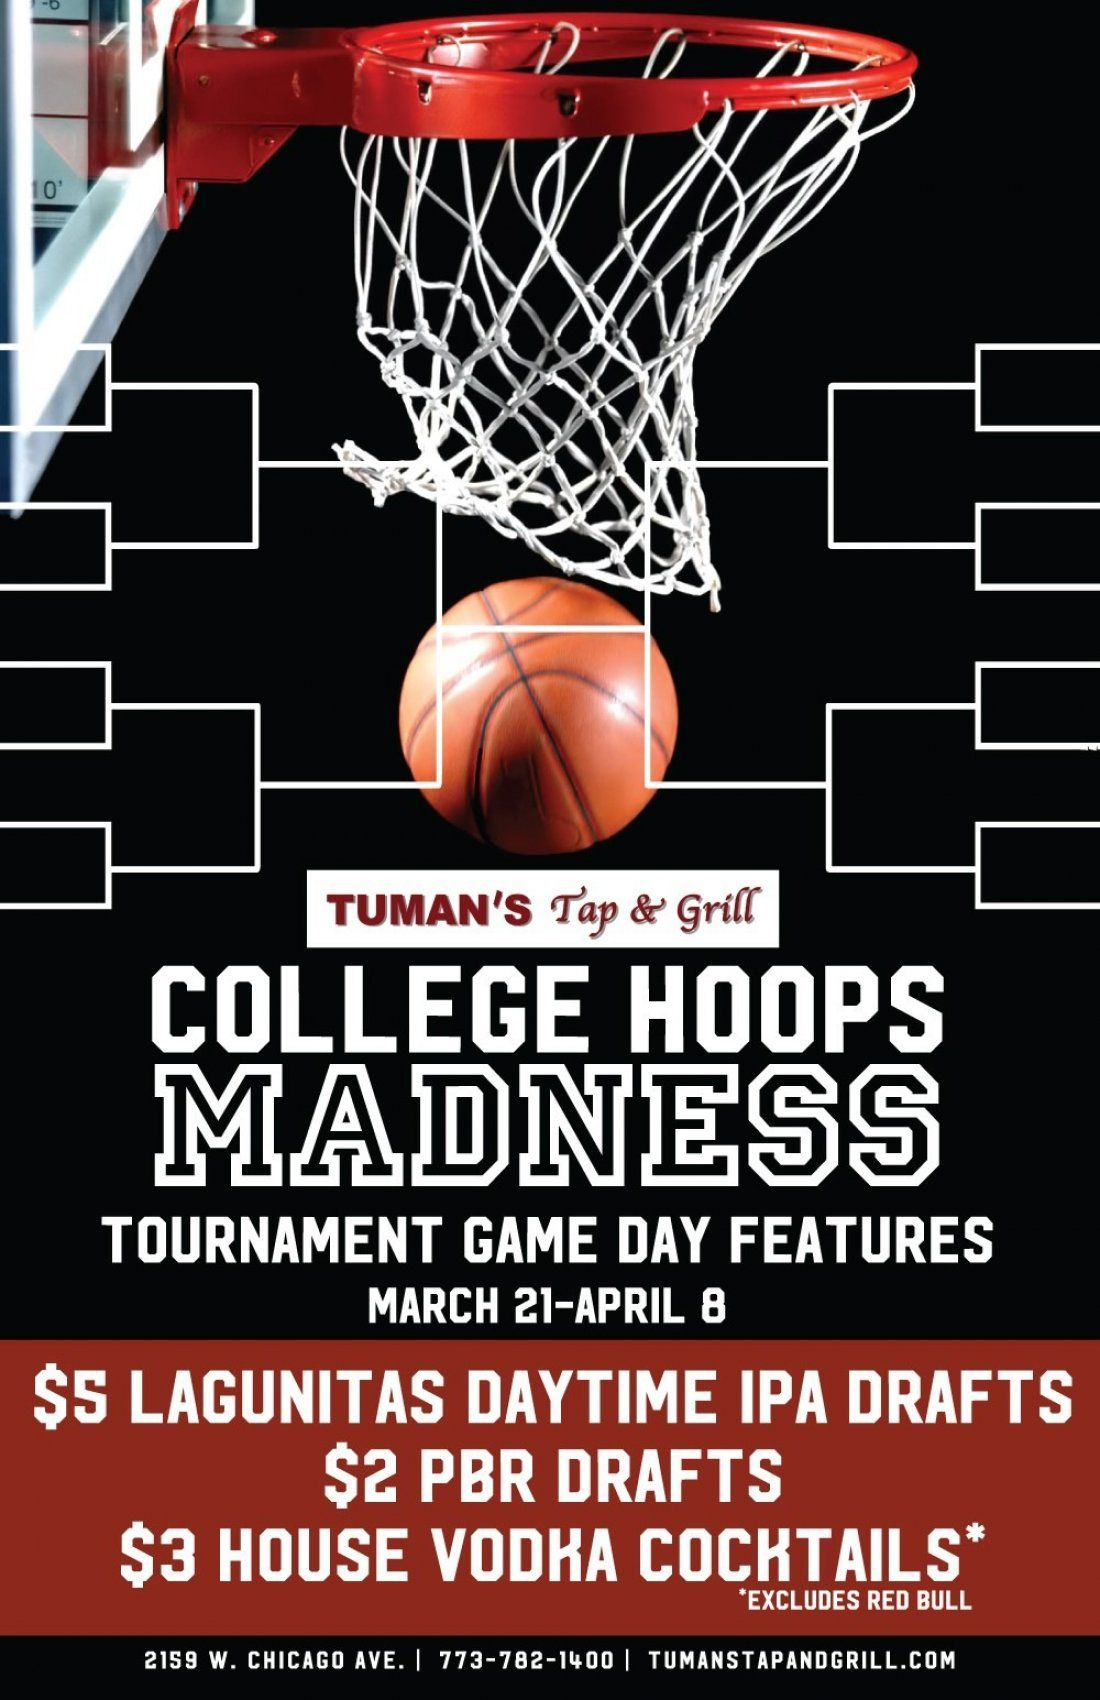 College Hoops Madness at Tumans Tap & Grill